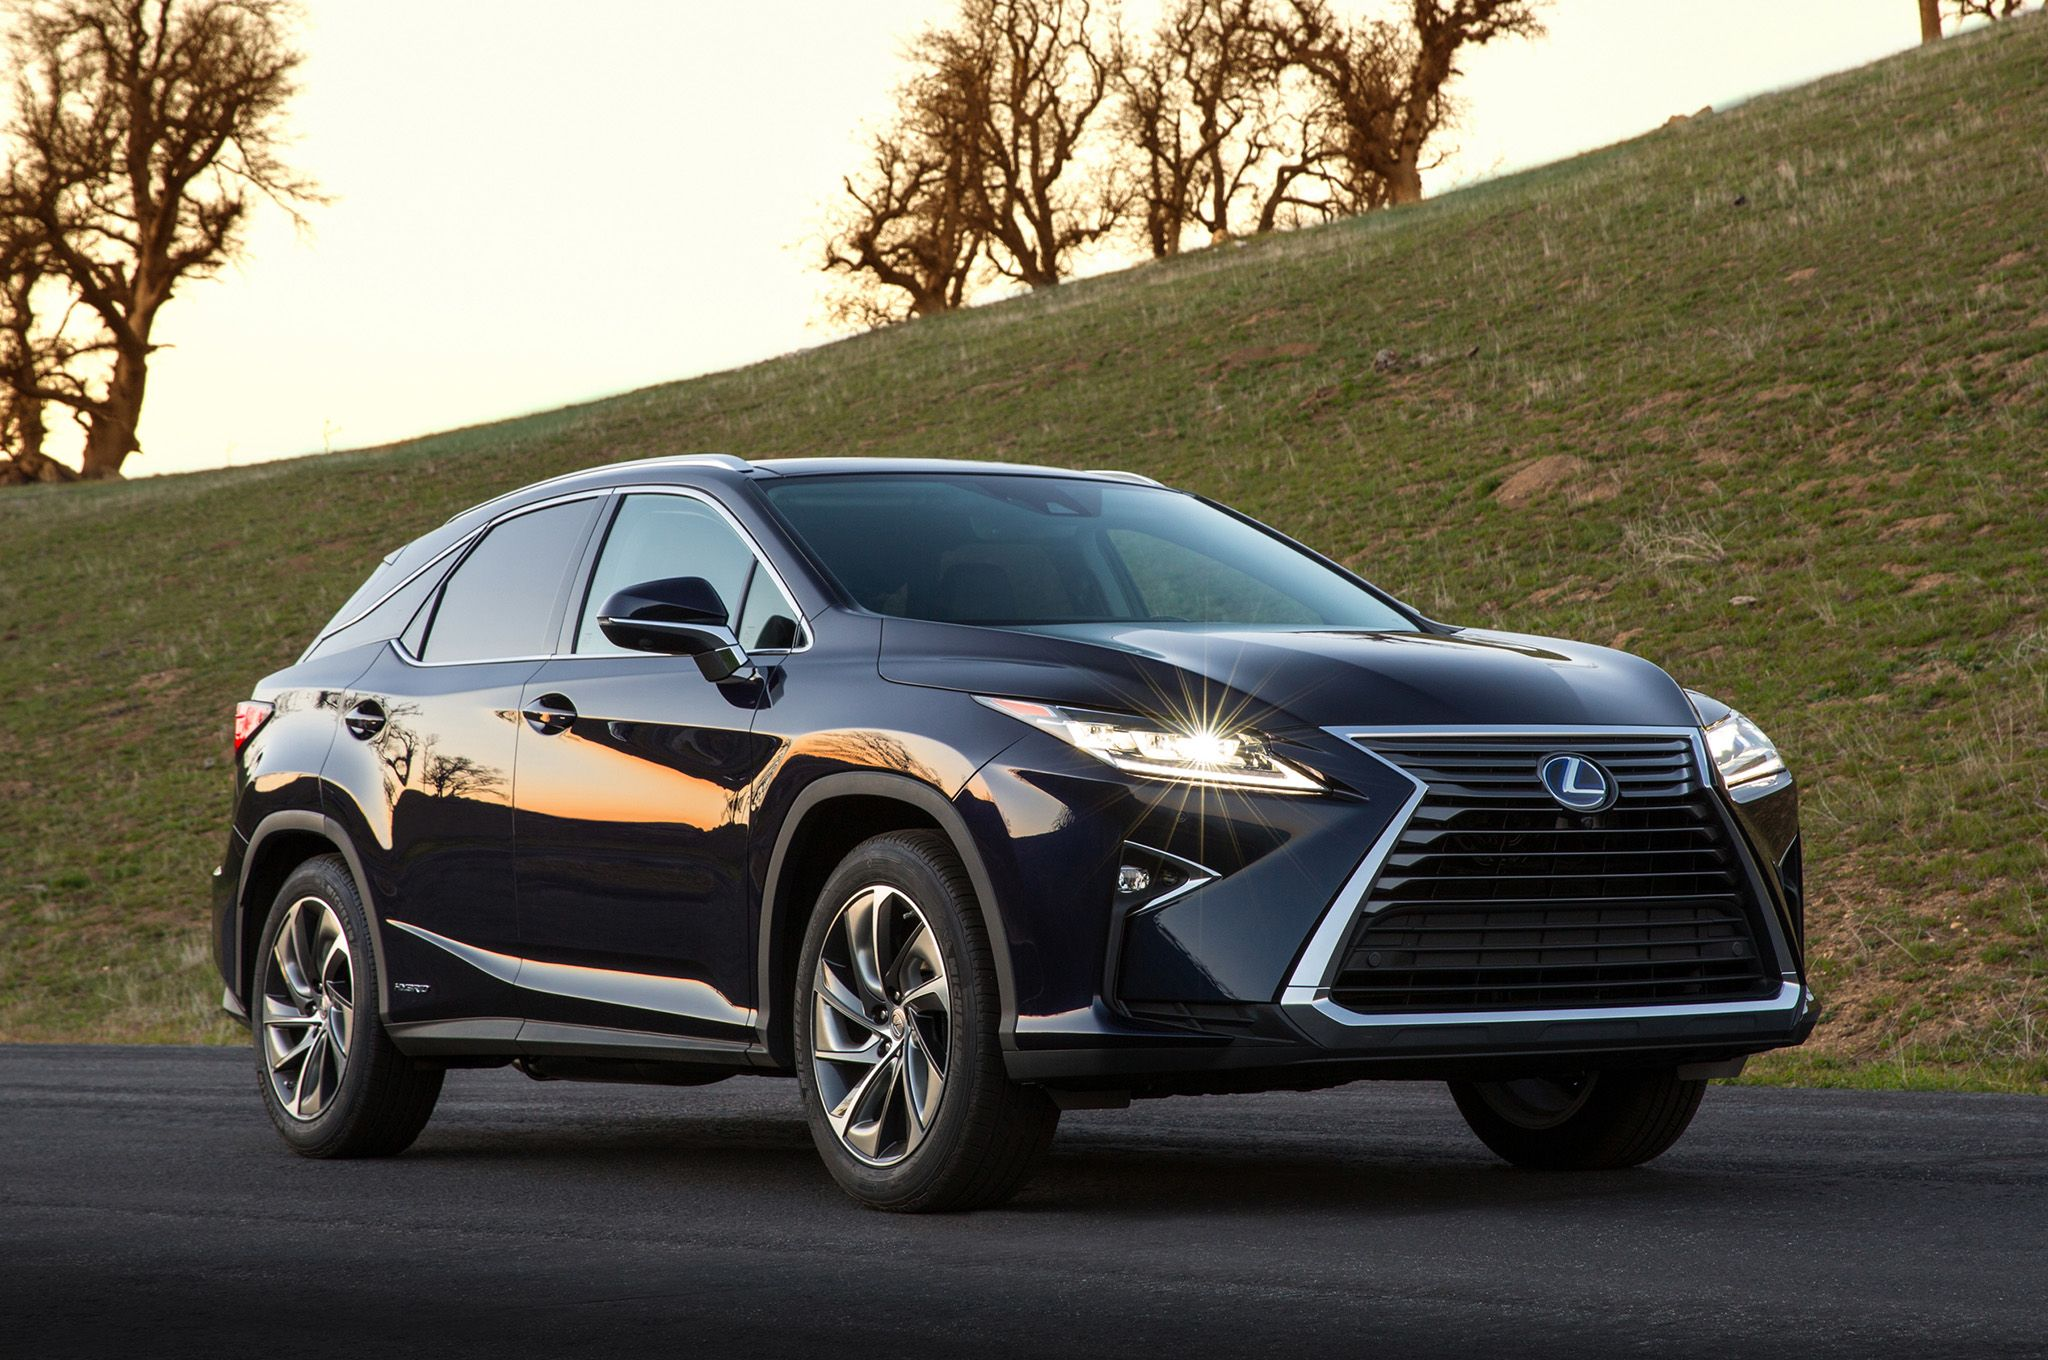 The 2016 lexus rx 2016 rx preliminary specifications rx 350 rx overall length in in overall width in in overall height in